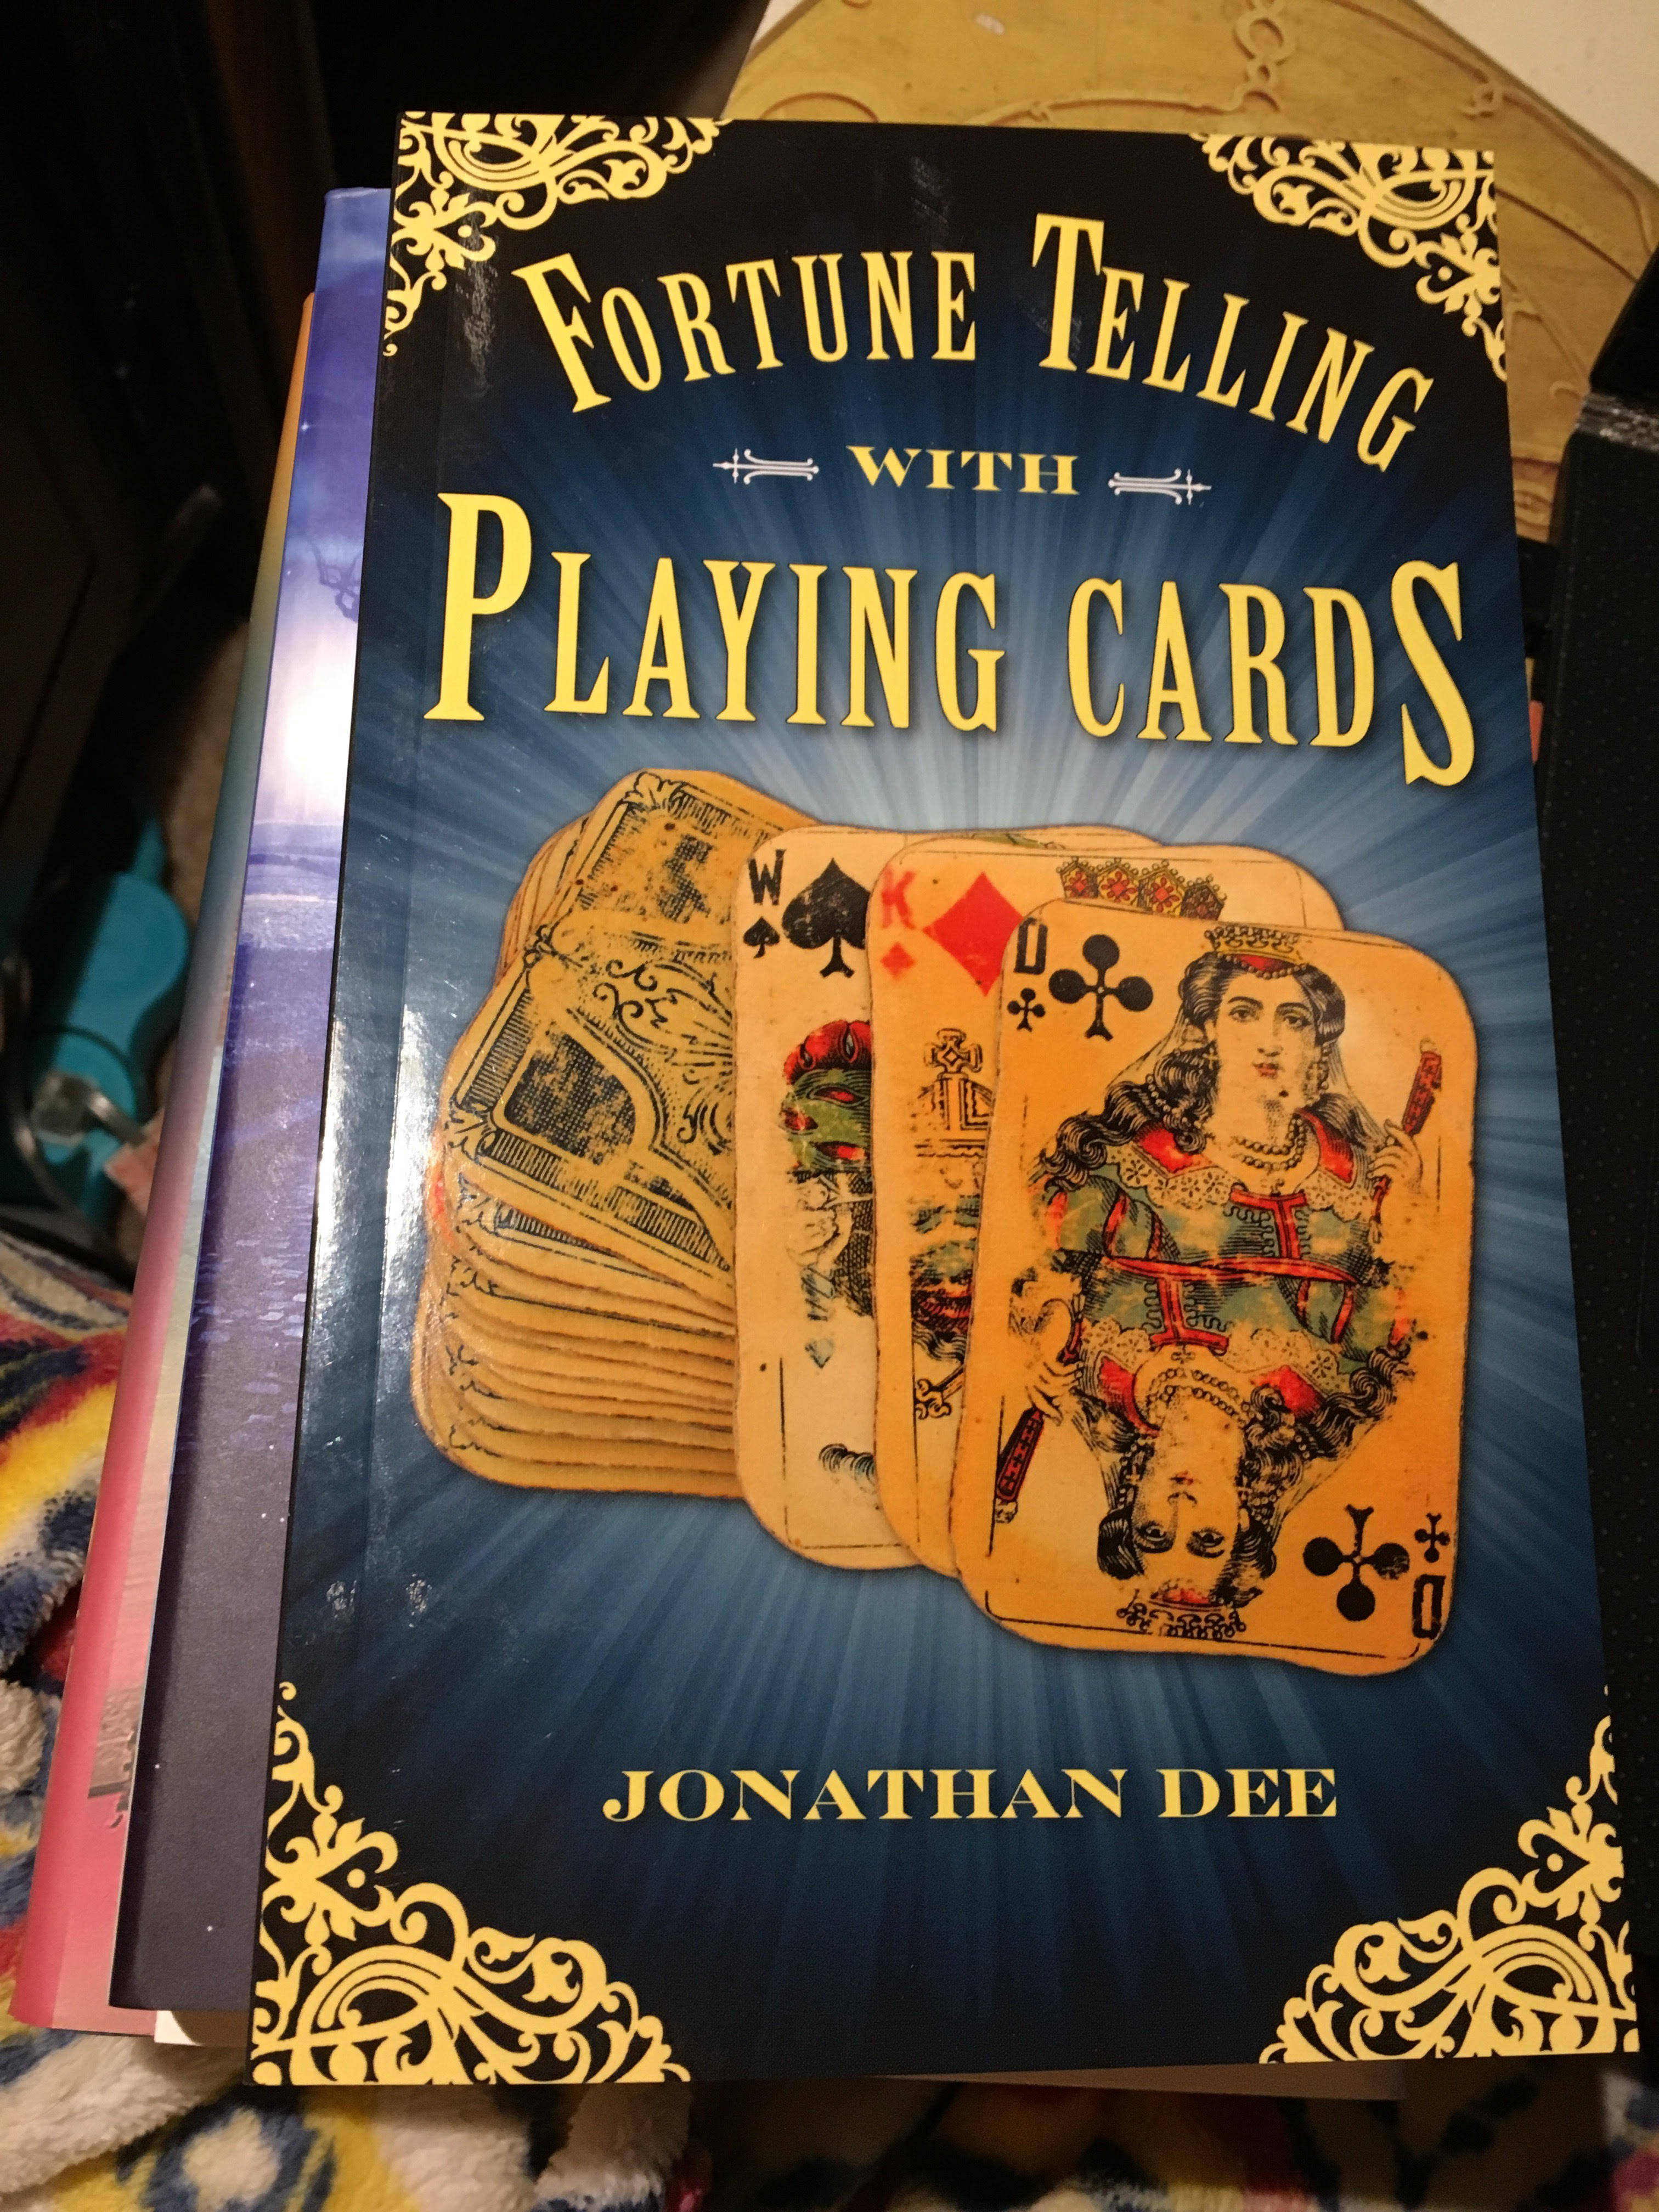 Fortune Telling with Playing Cards by Jonathan Dee | Book Review